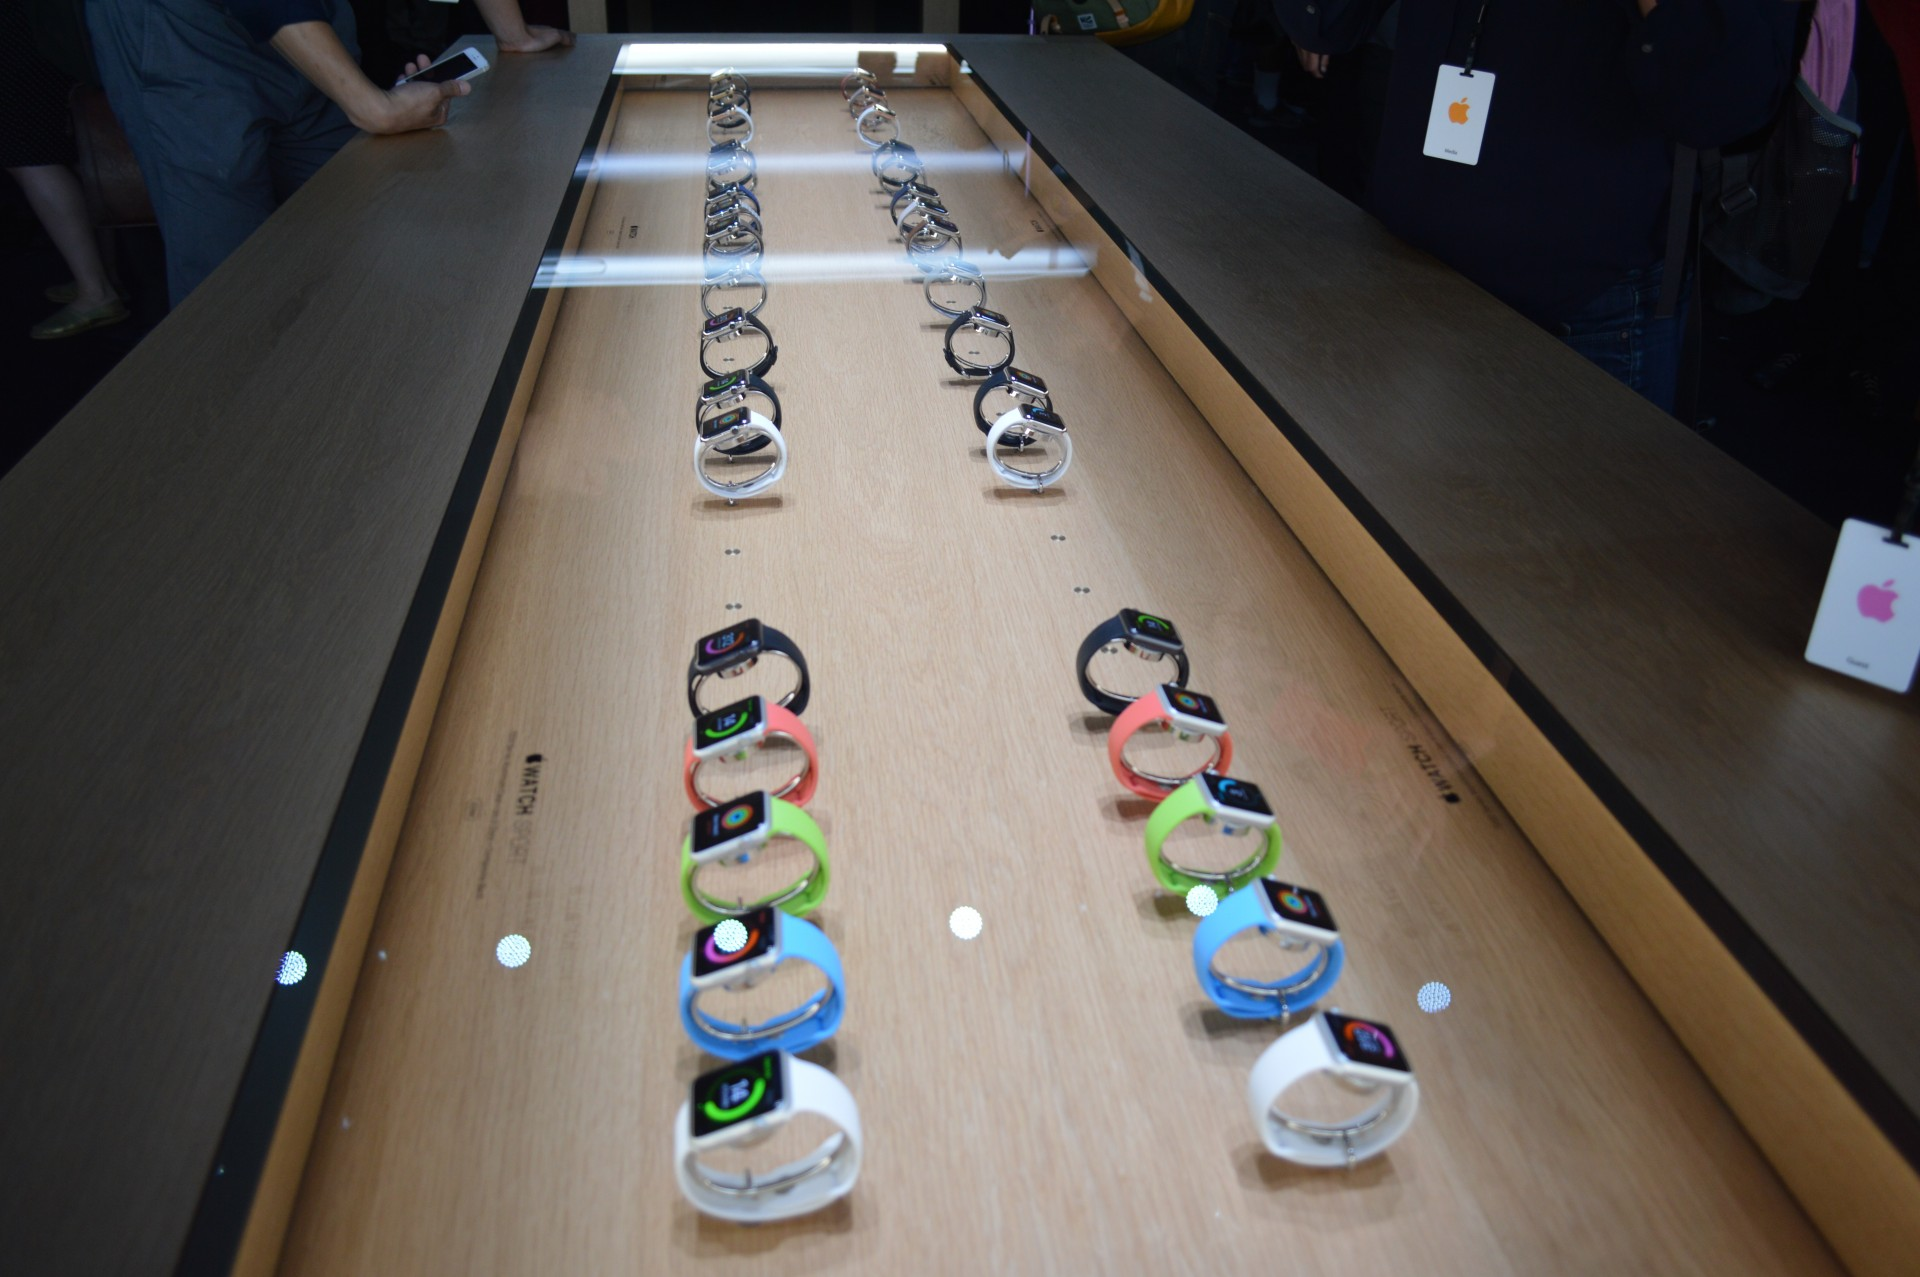 Apple Watch hands on table from September